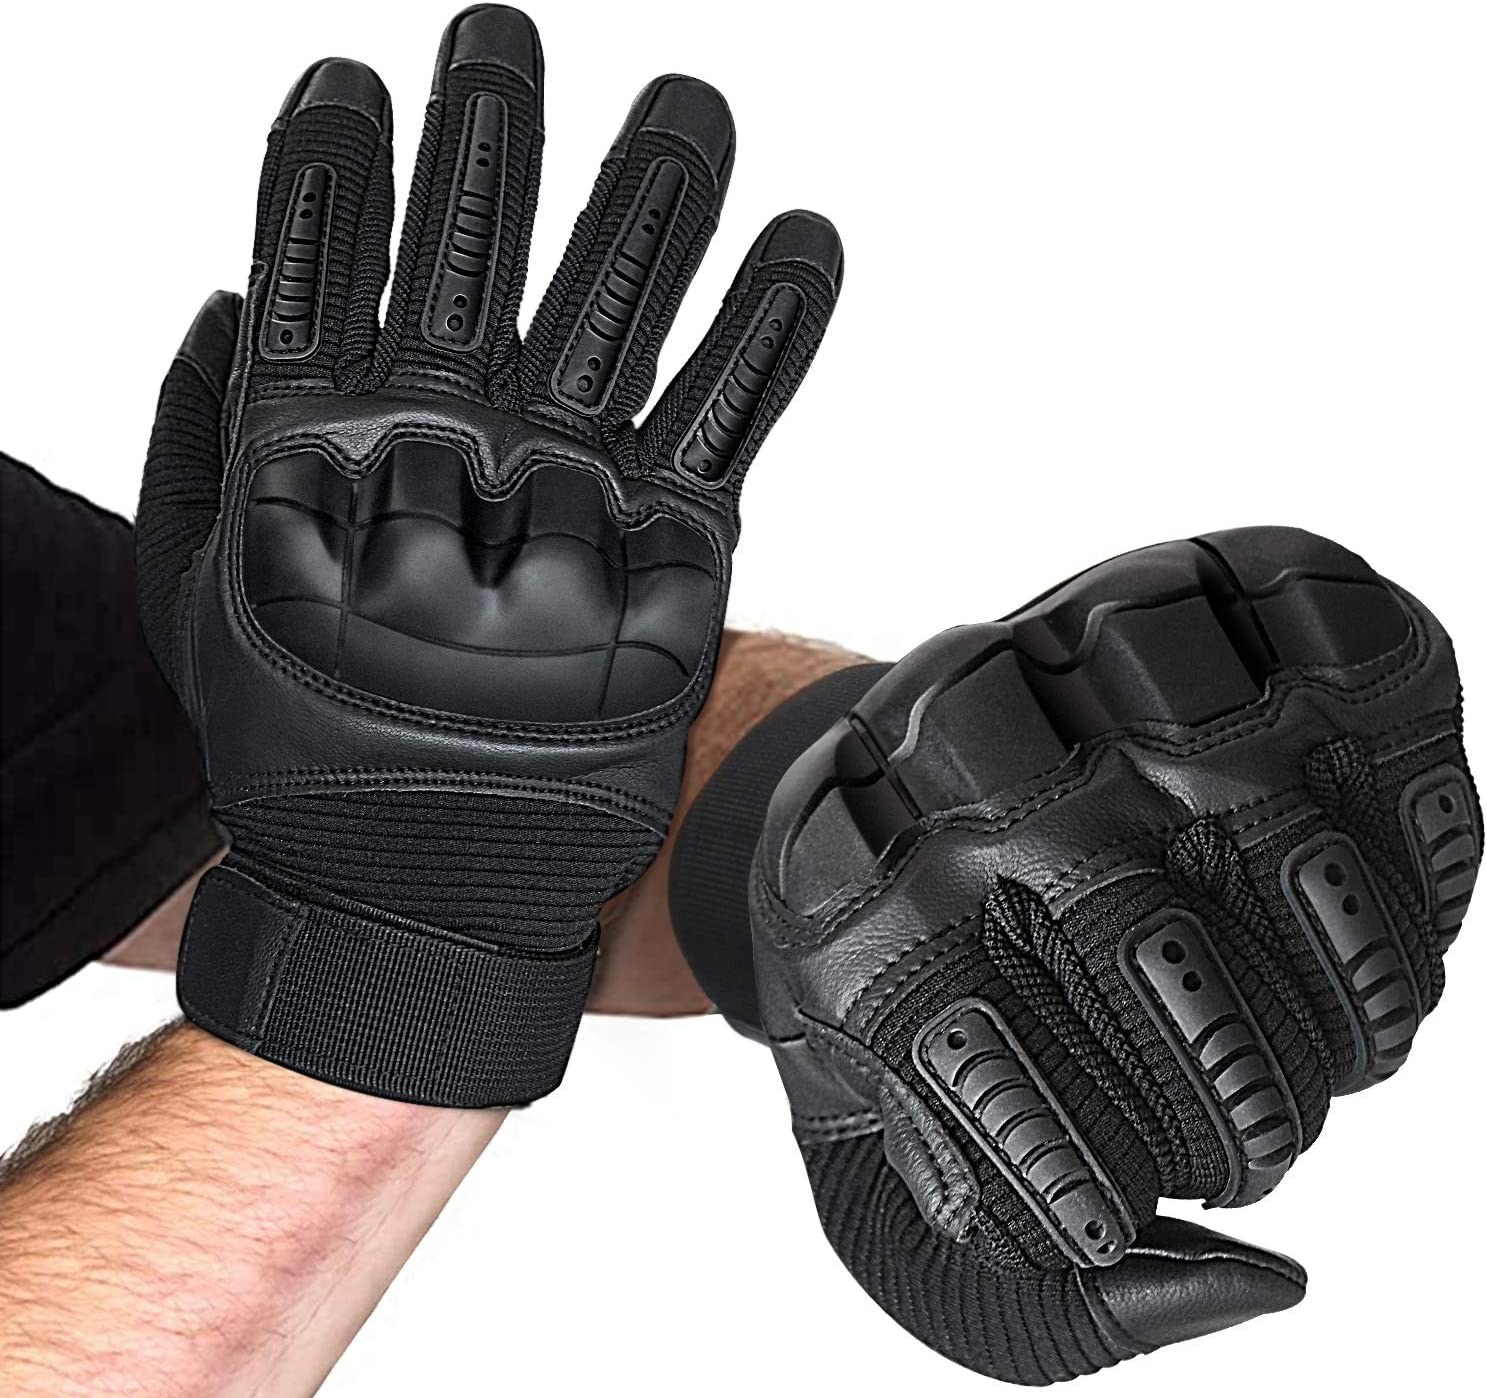 Knuckle Tactical Gloves Men Black Military Gloves Shooting Airsoft Paintball XL